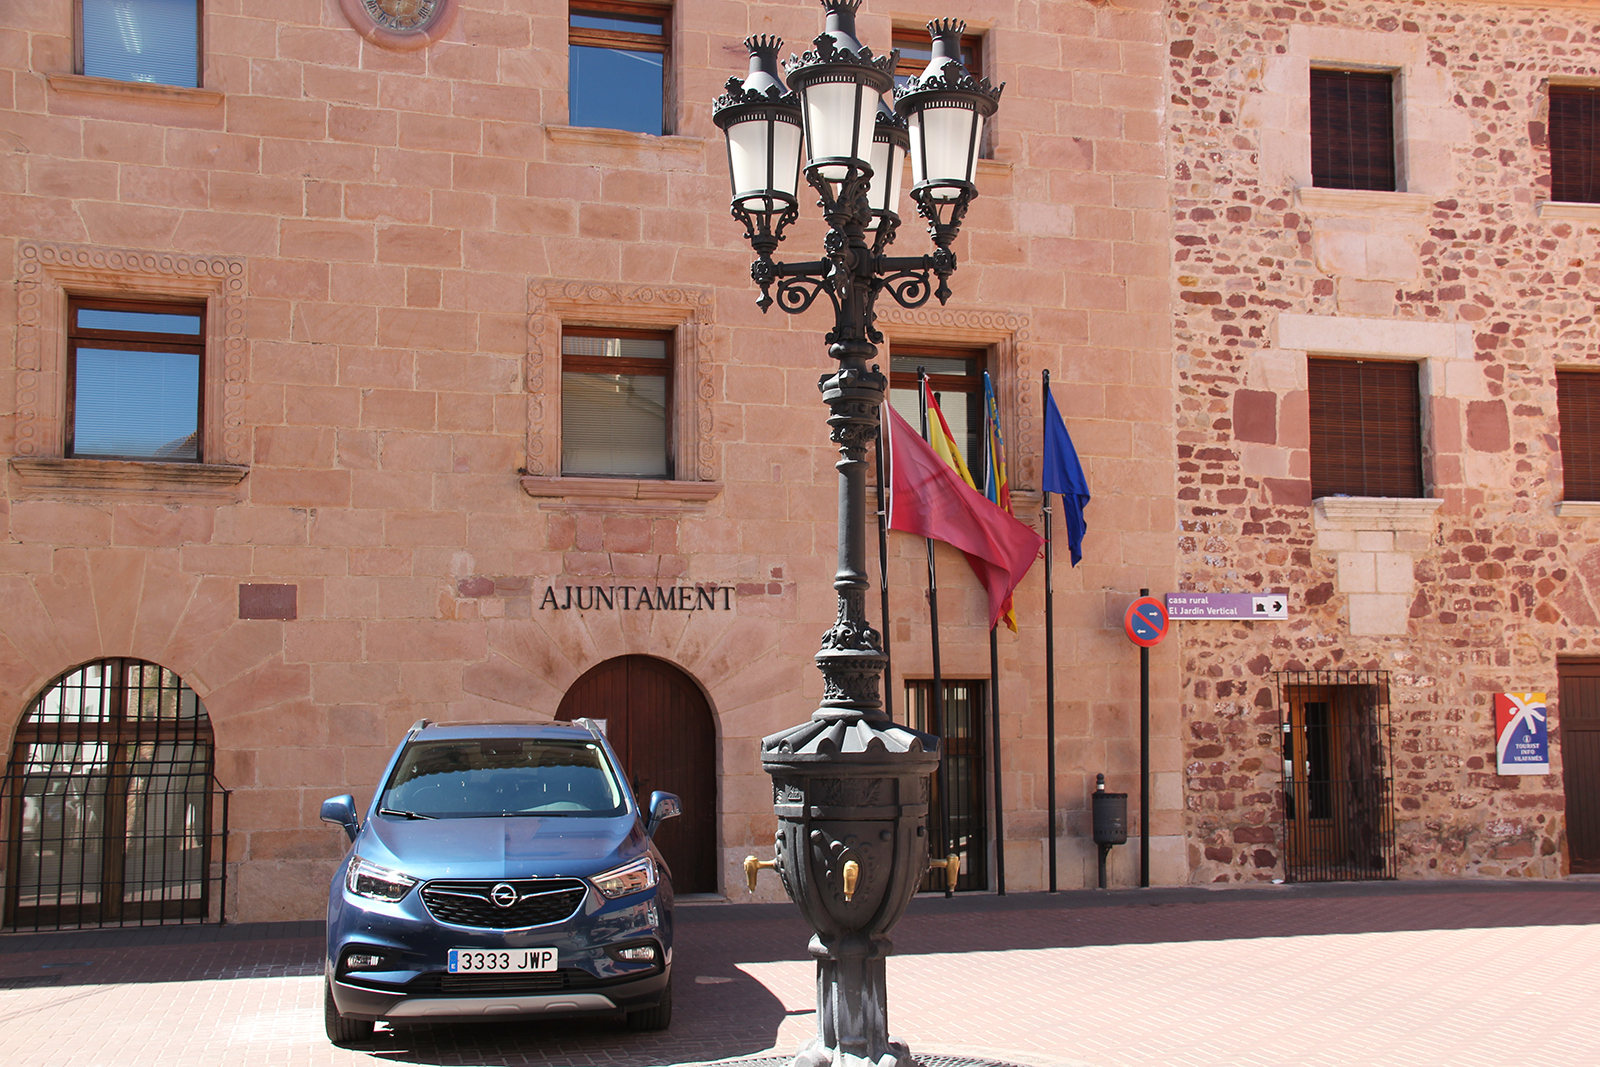 Vilafames Spain car outside town hall